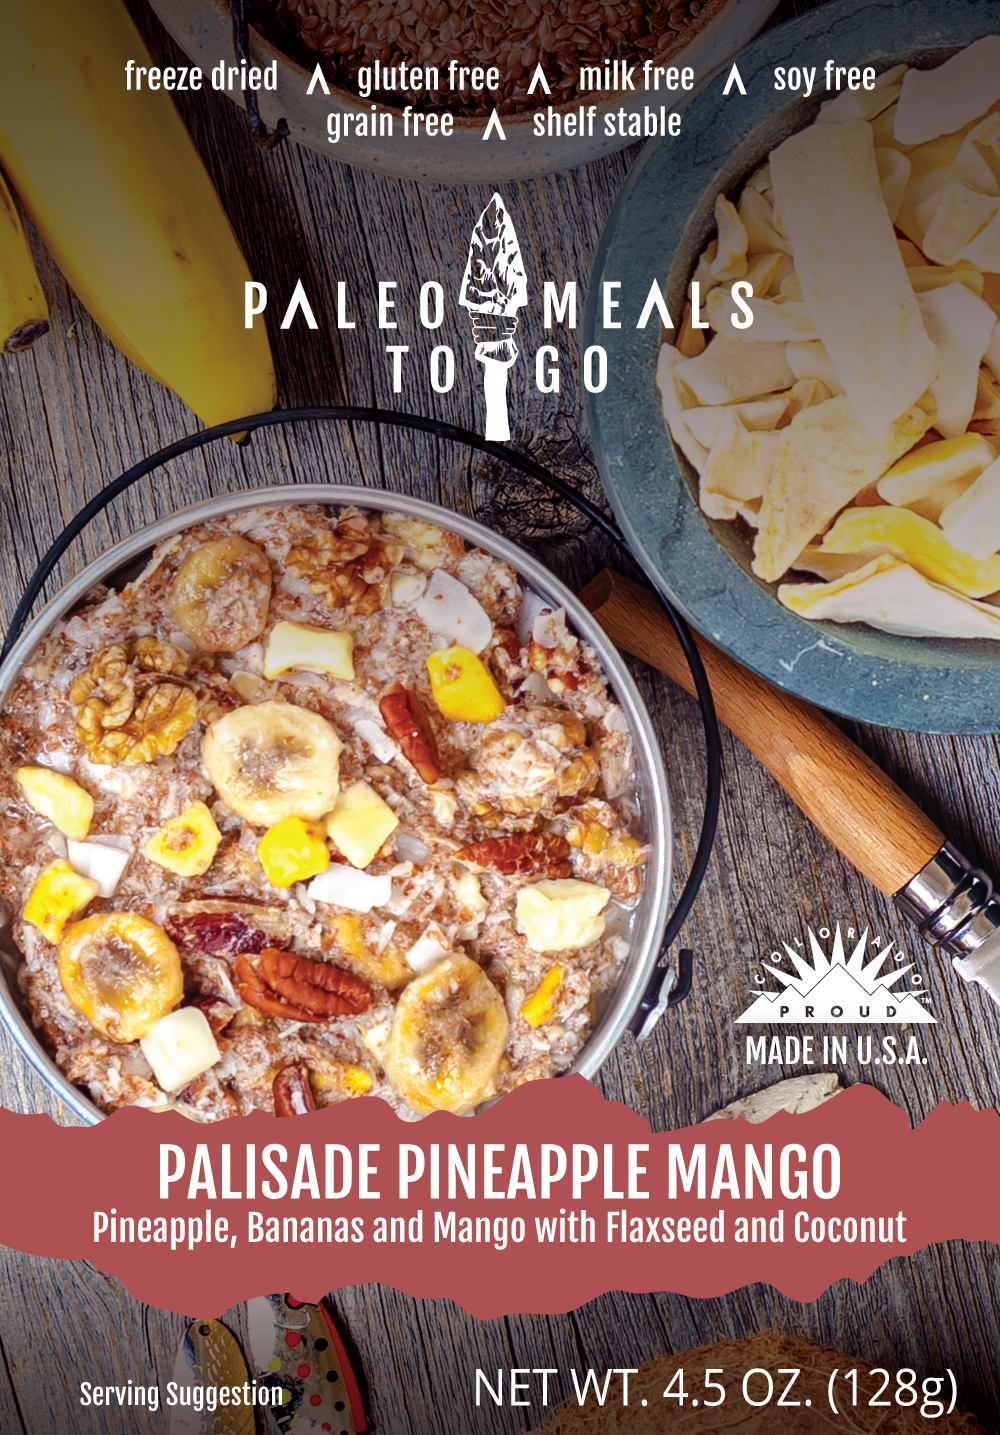 Paleo Meals to Go - breakfast